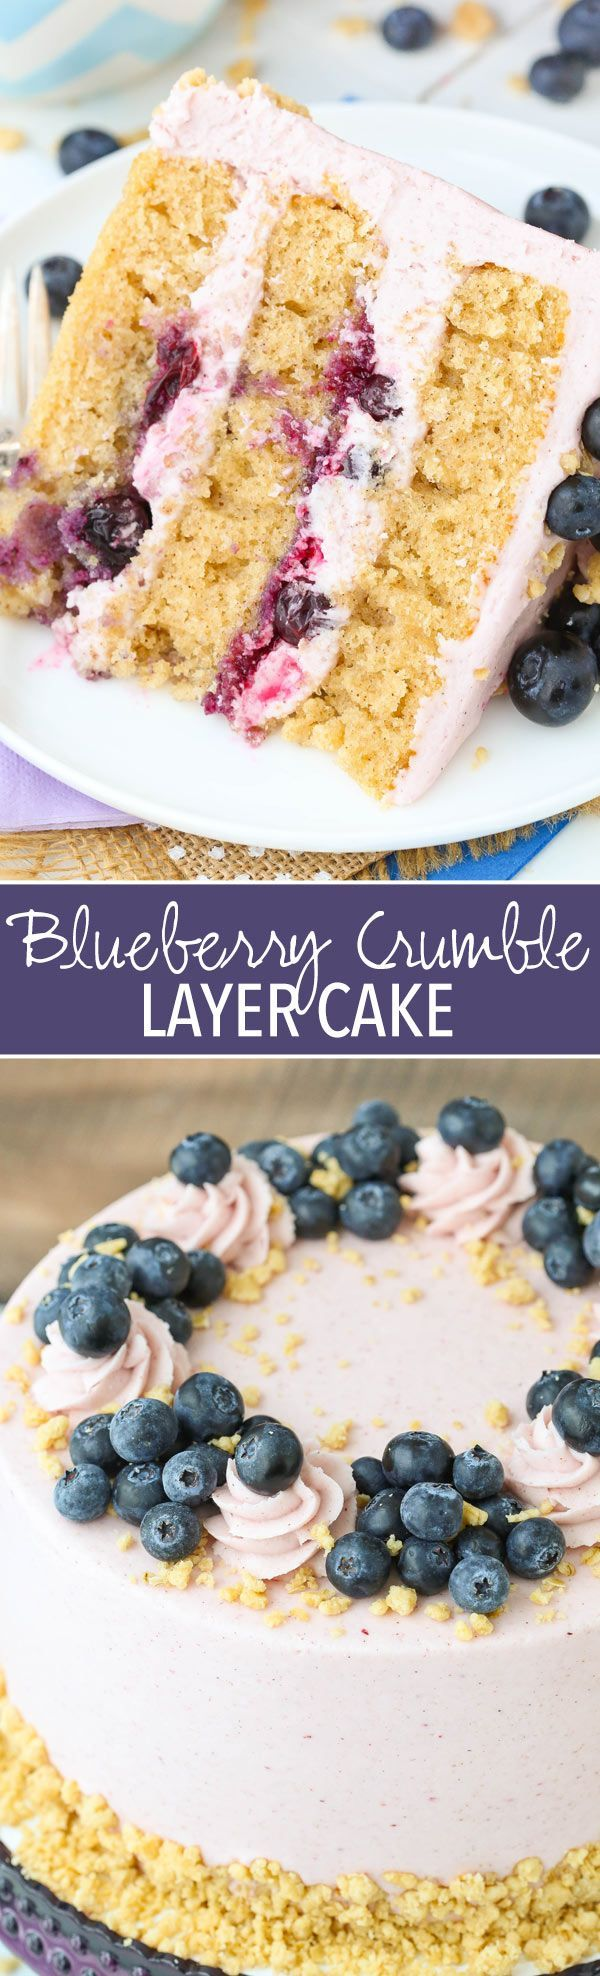 Blueberry Crumble Layer Cake - layers of cinnamon brown sugar cake, blueberry filling and frosting, and a little crumble! Like a pie in cake form!